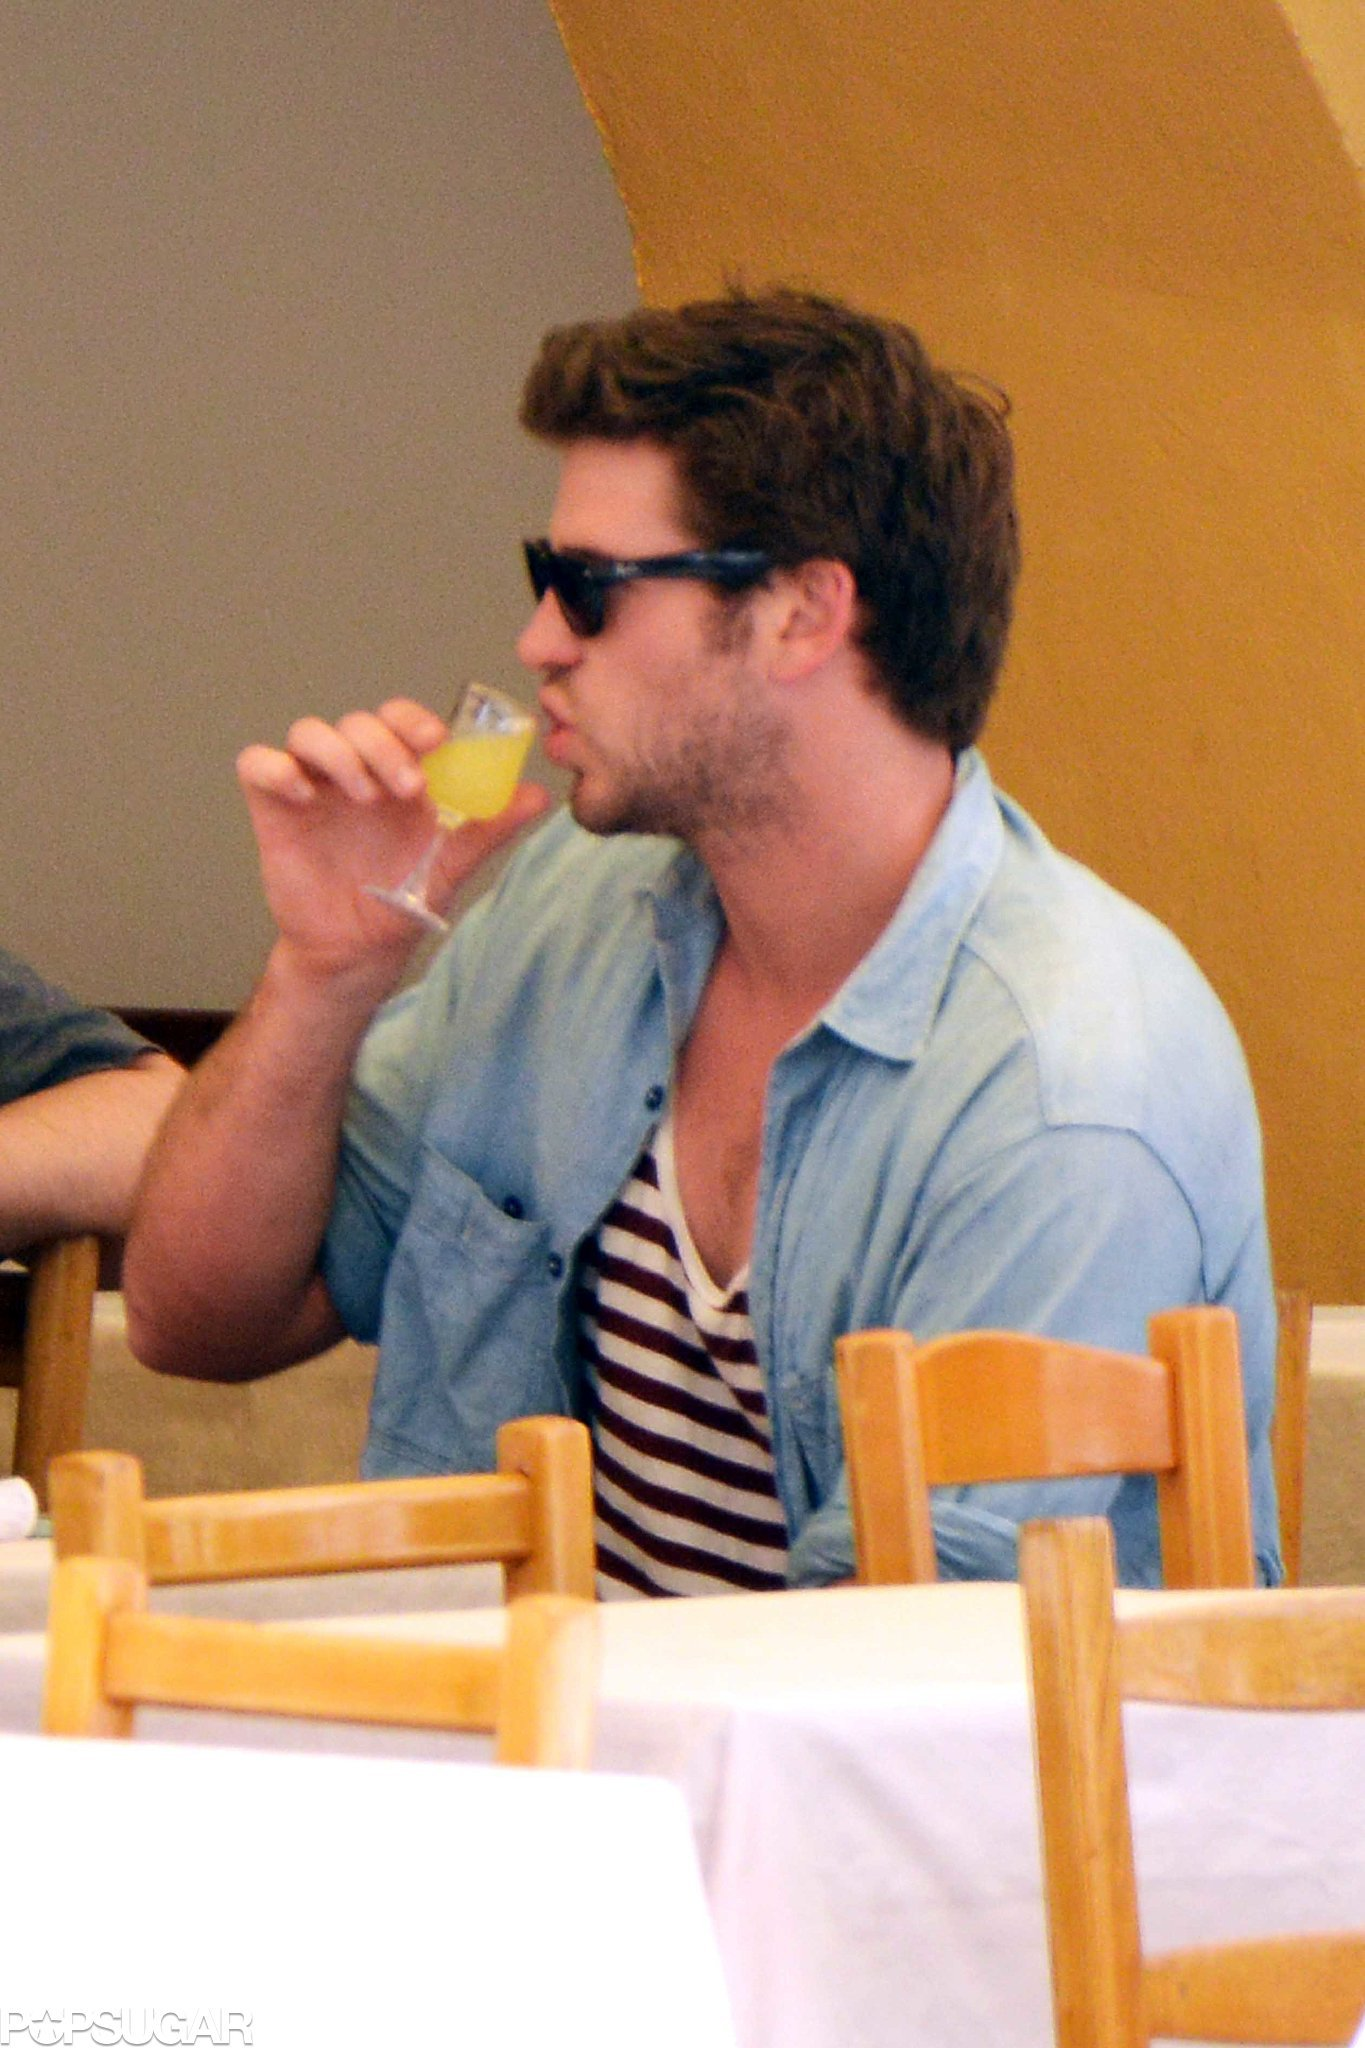 Liam Hemsworth Tastes the Life of Luxury From His Tiny, Tiny Glass